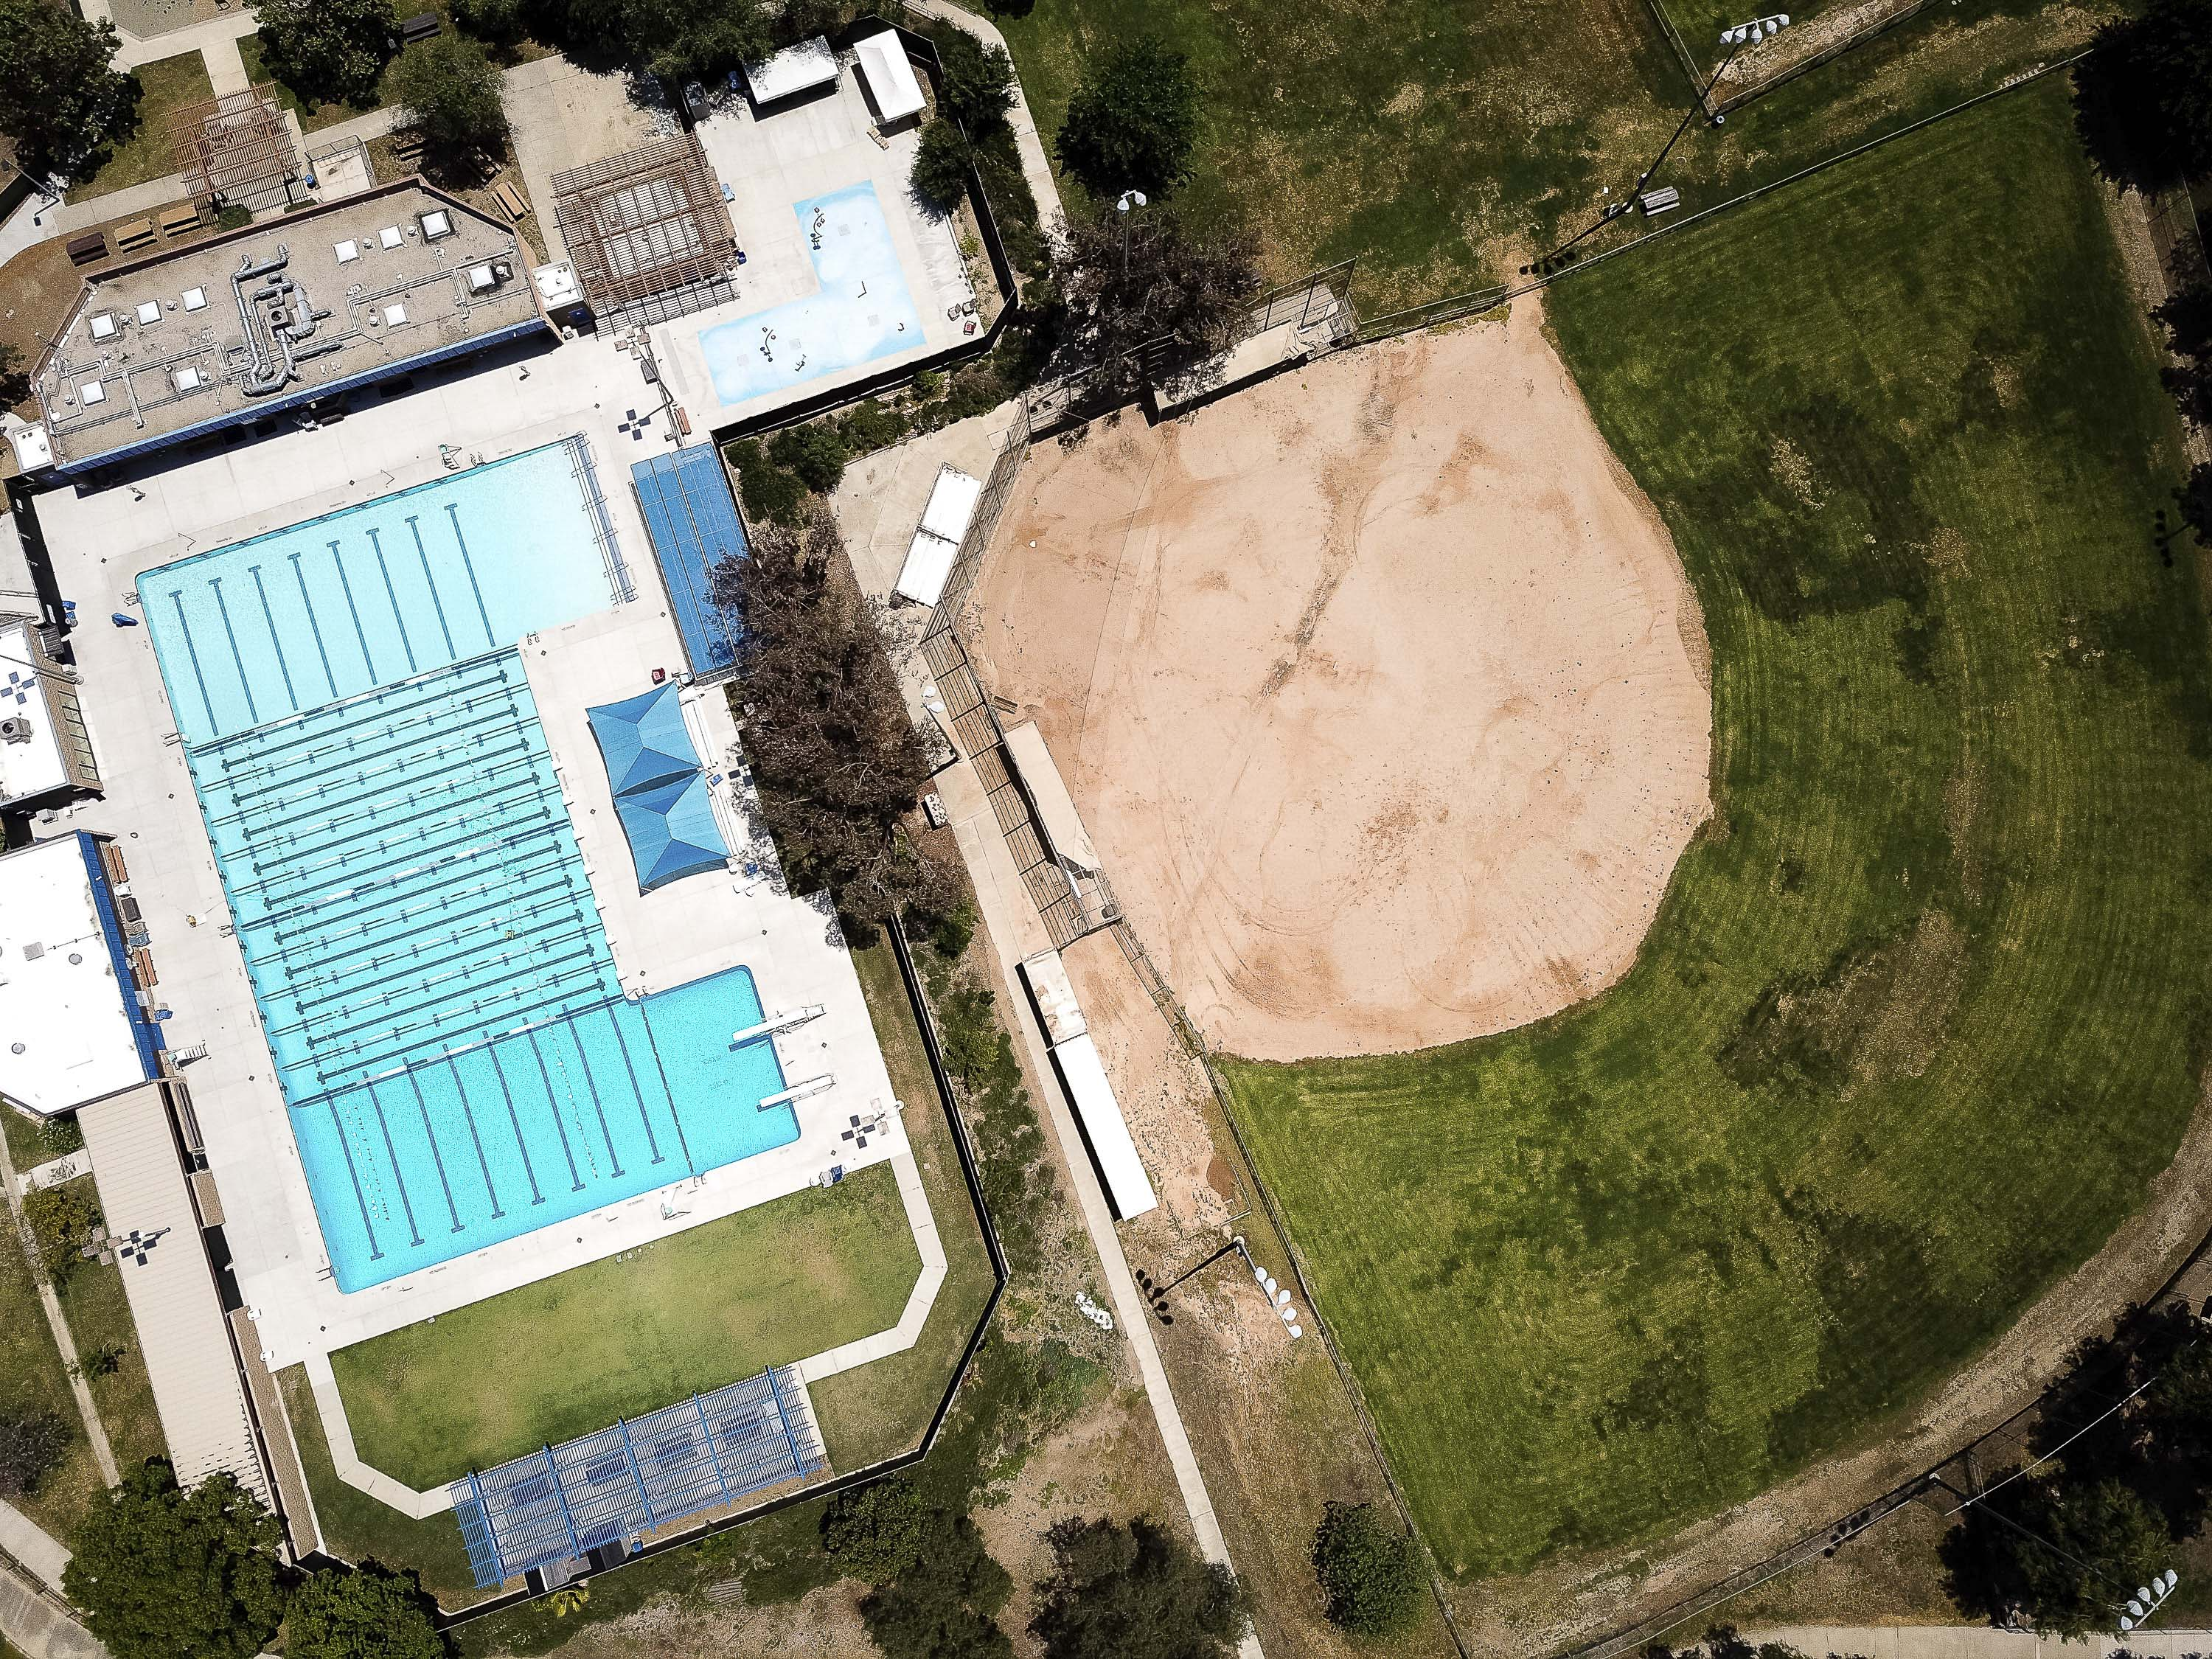 Public pools and little league fields across the county such as these in Poway, remain closed due to COVID-19, May 15, 2020. Photos by Lisa Hornak for CalMatters.